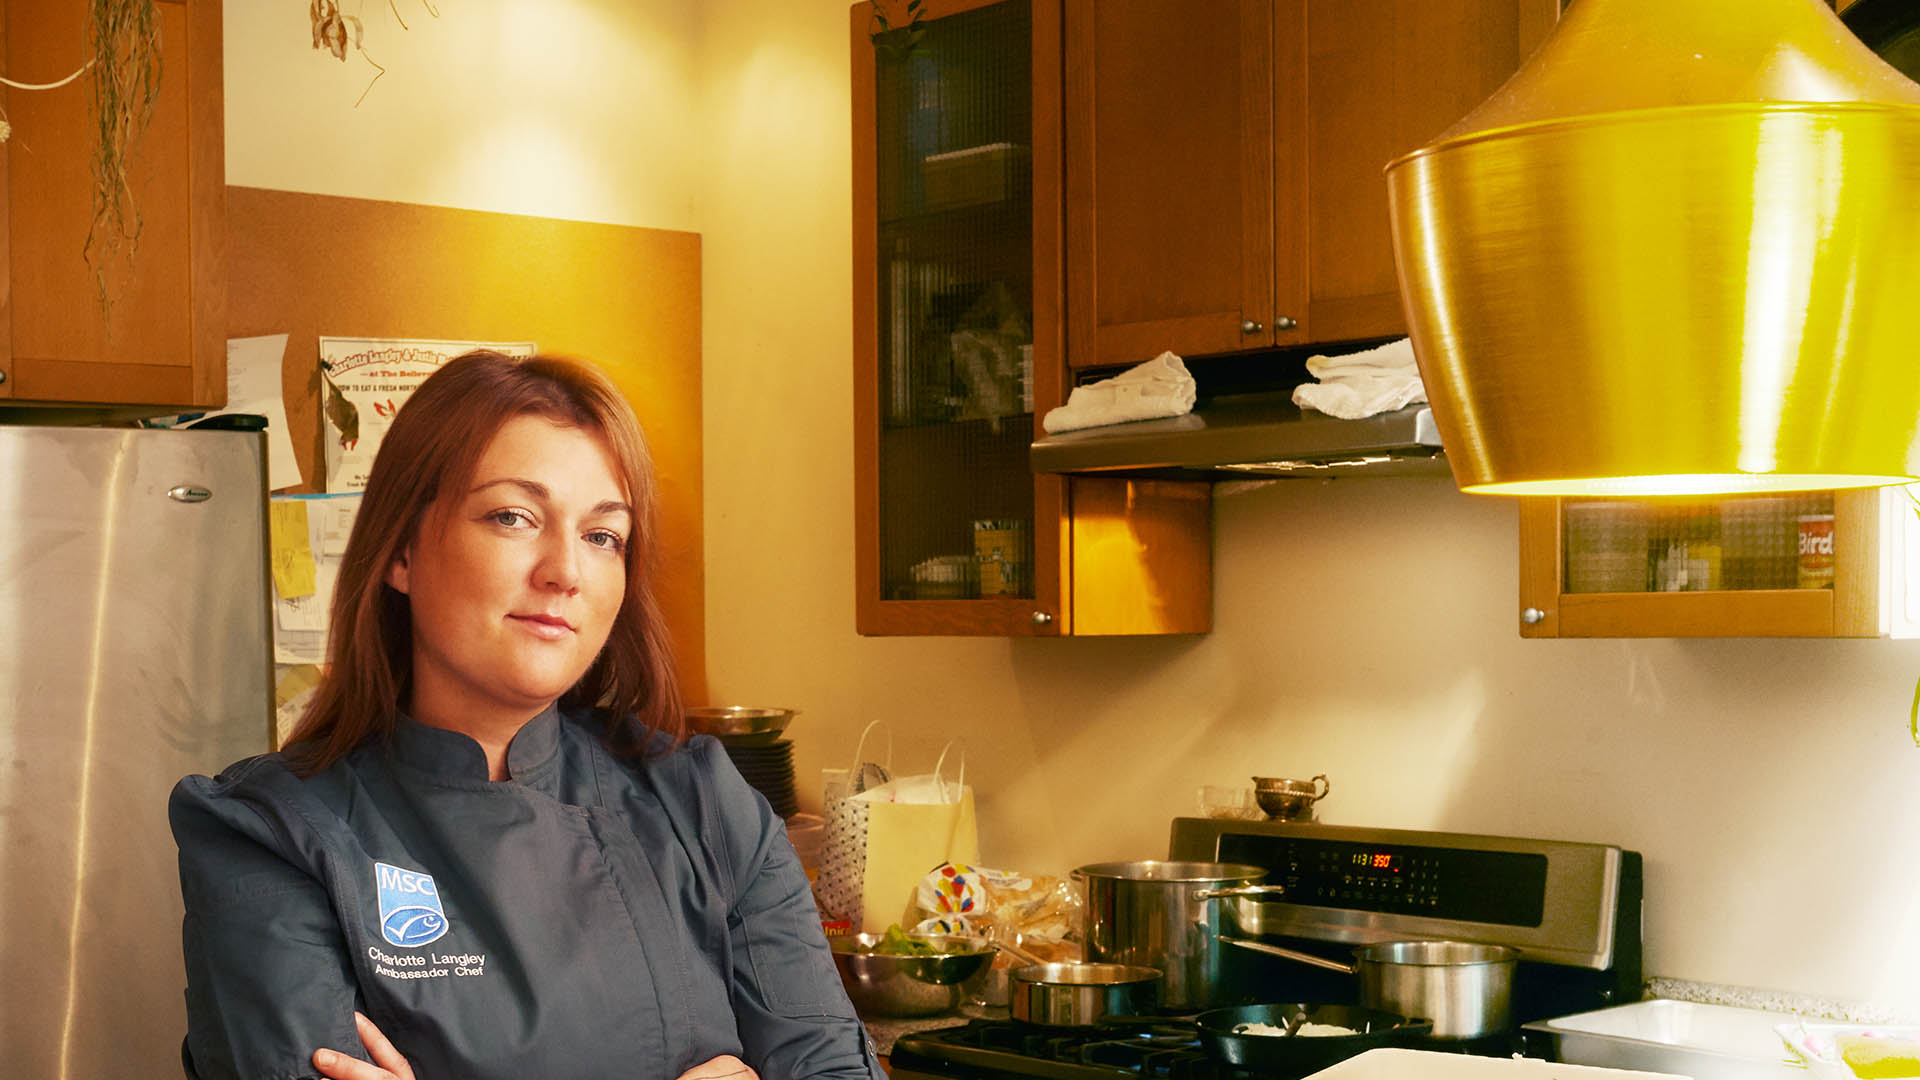 Chef Charlotte Langley in kitchen